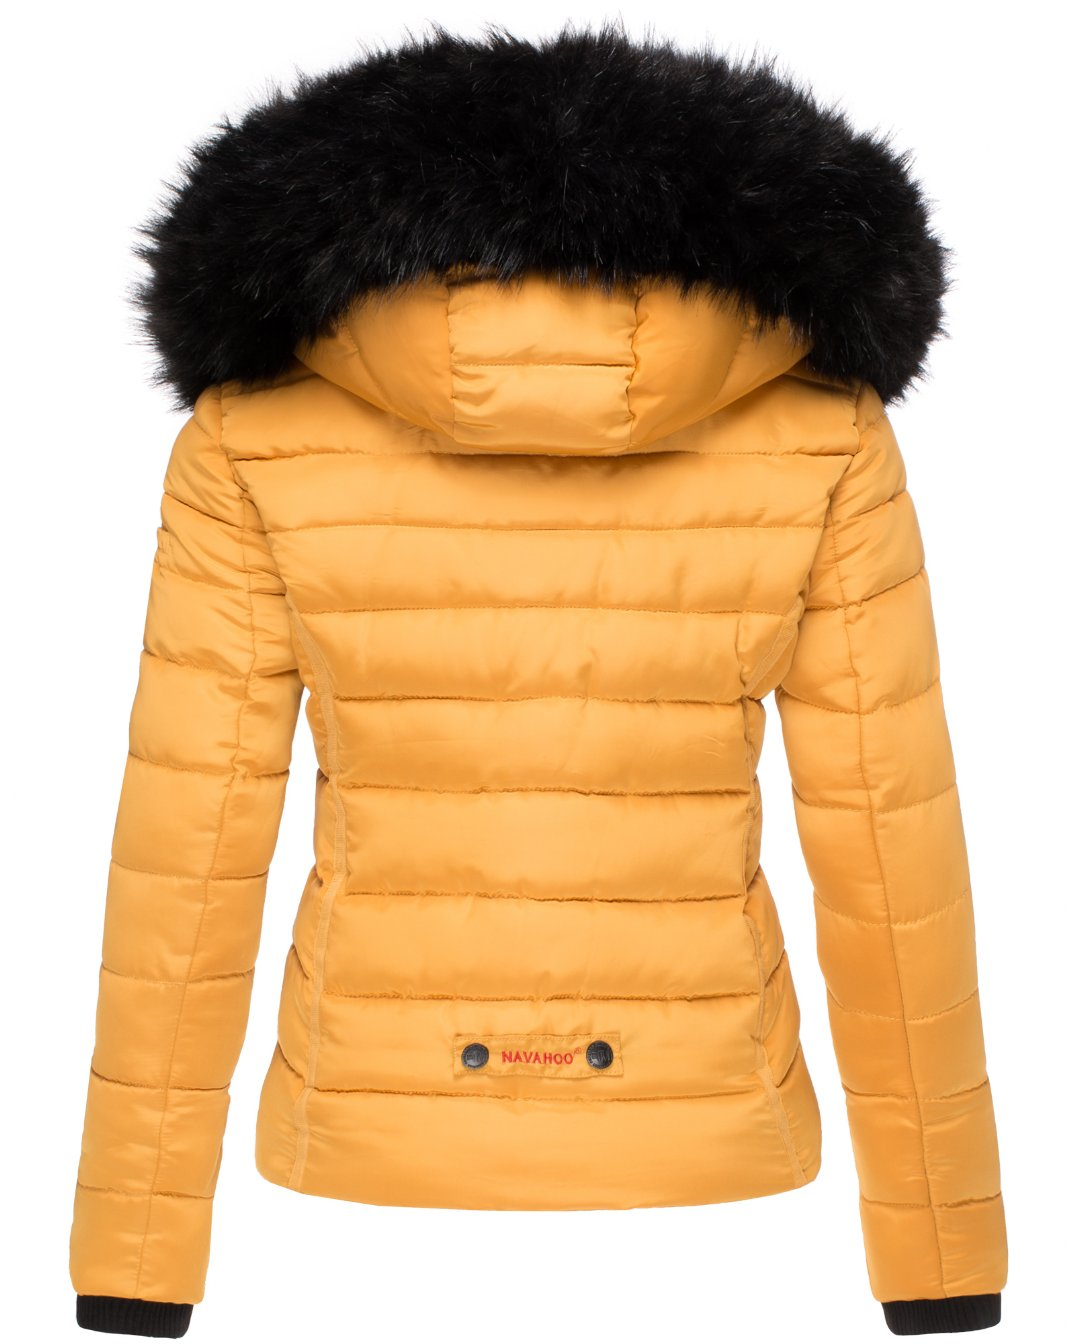 Miamor Navahoo Damen Winterjacke Yellow